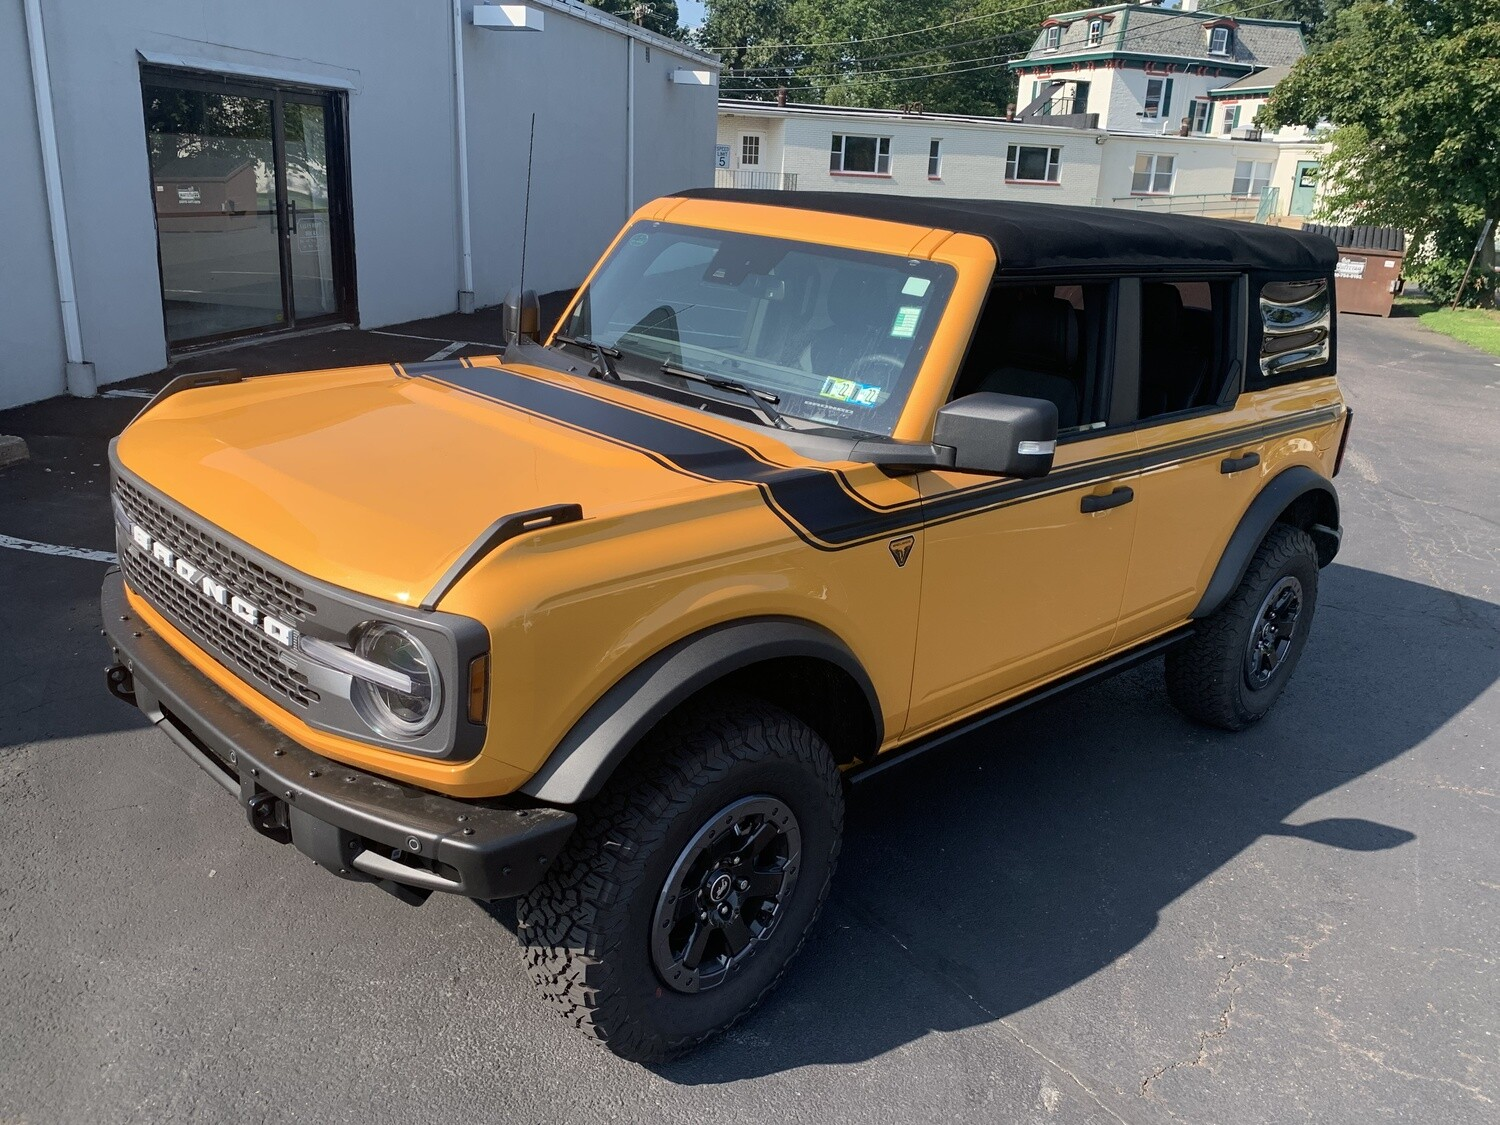 2021-up Ford Bronco Retro Special Decor Style Side/Hood Graphics Kit (Centered on Body Line)